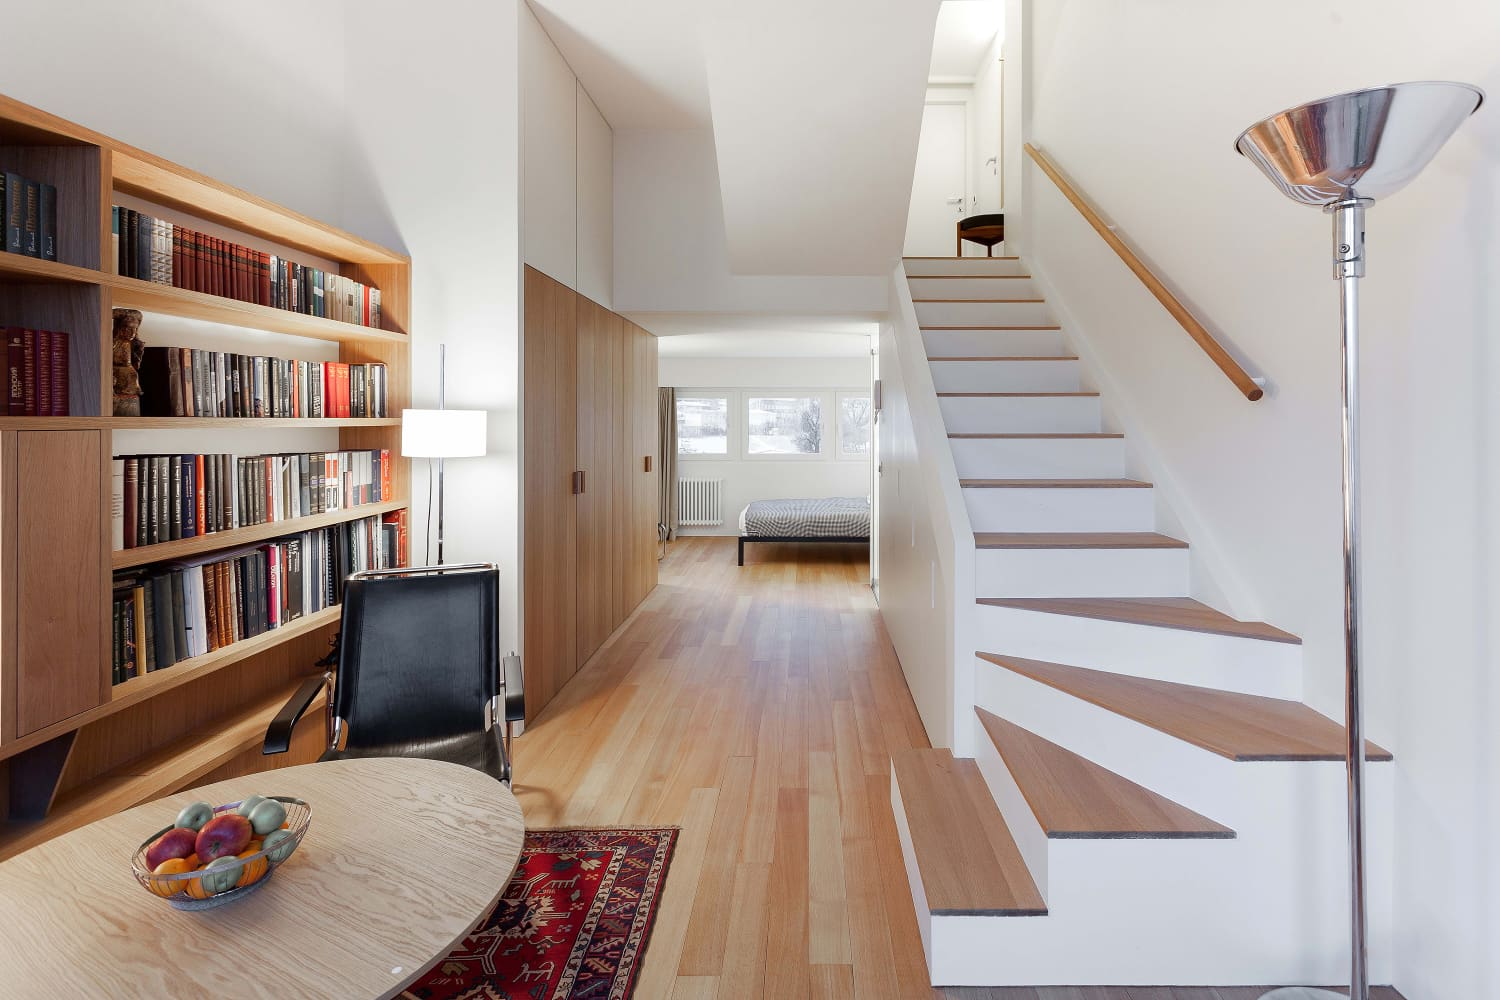 This Hallway Hides a Kitchen, Laundry Room, AND Storage